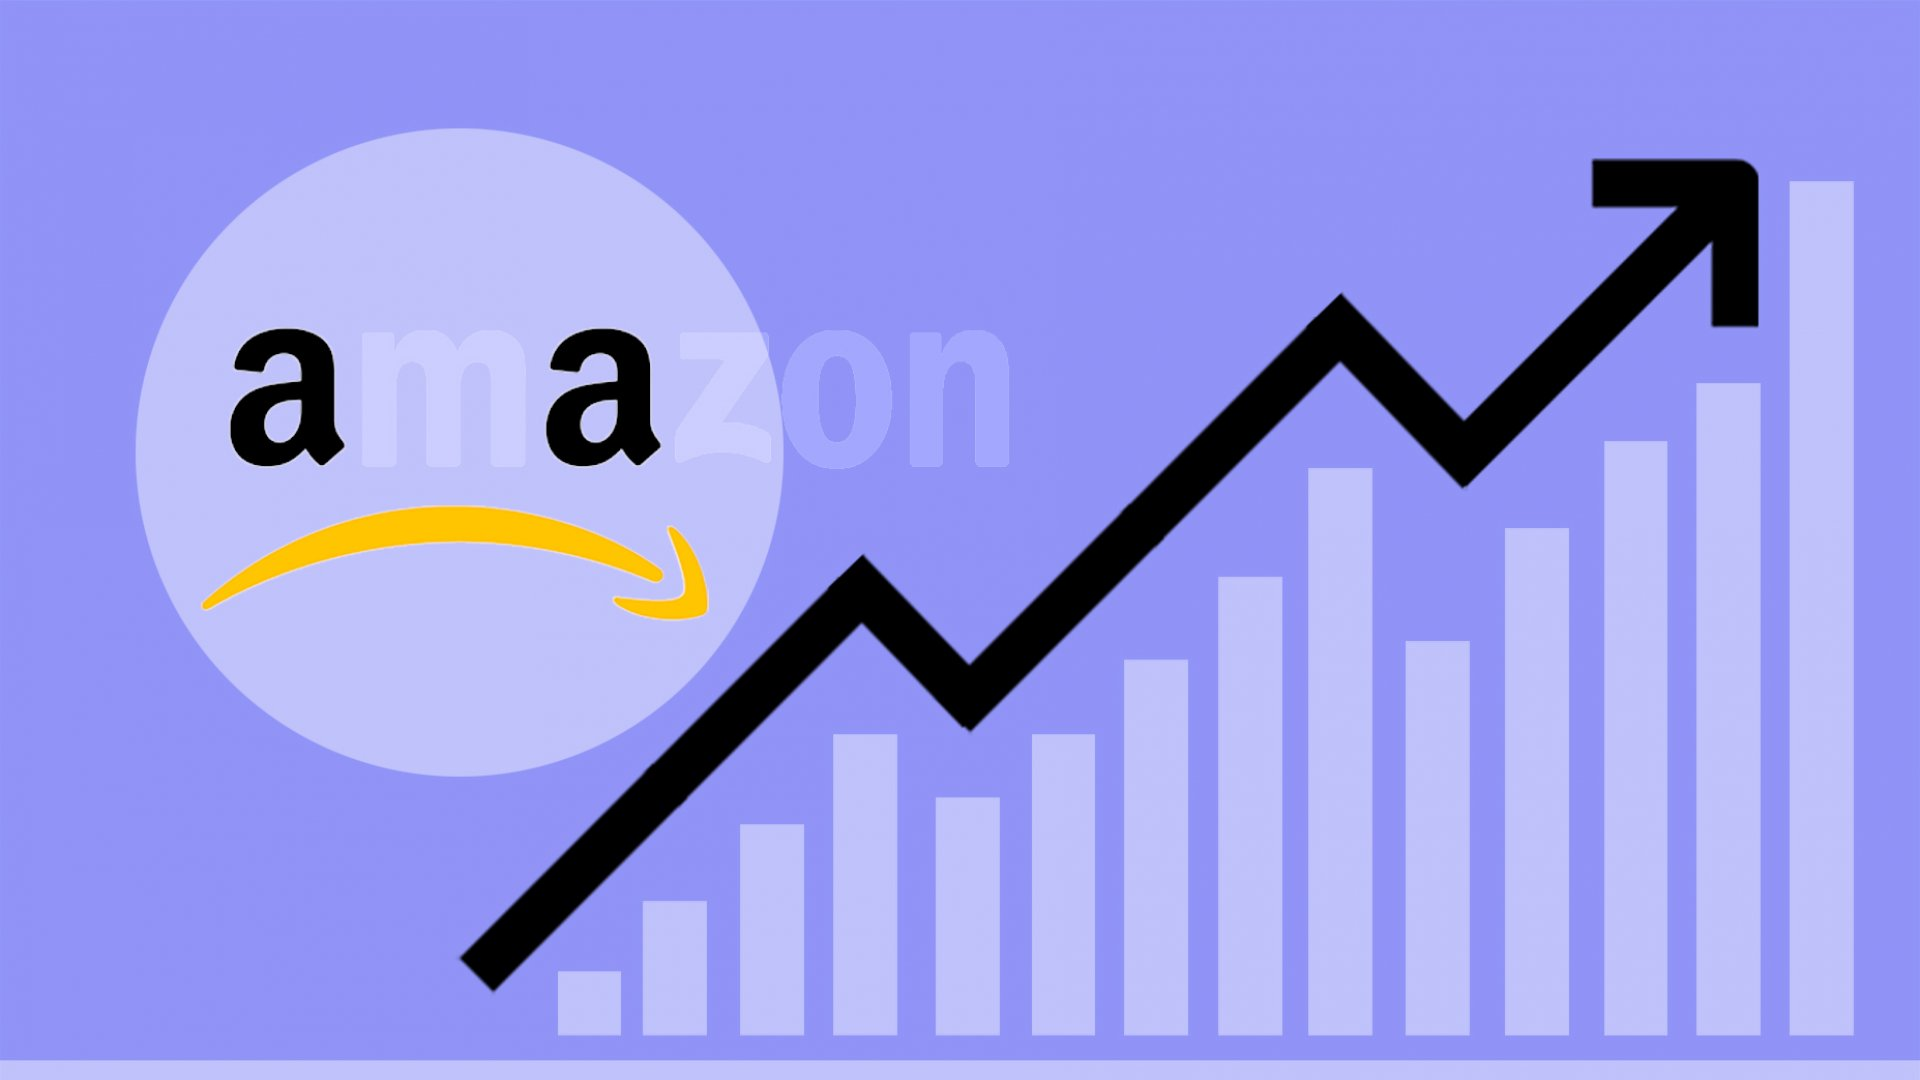 Amazon Sales Hit Record Highs, but How Did Customers Respond? Not Well